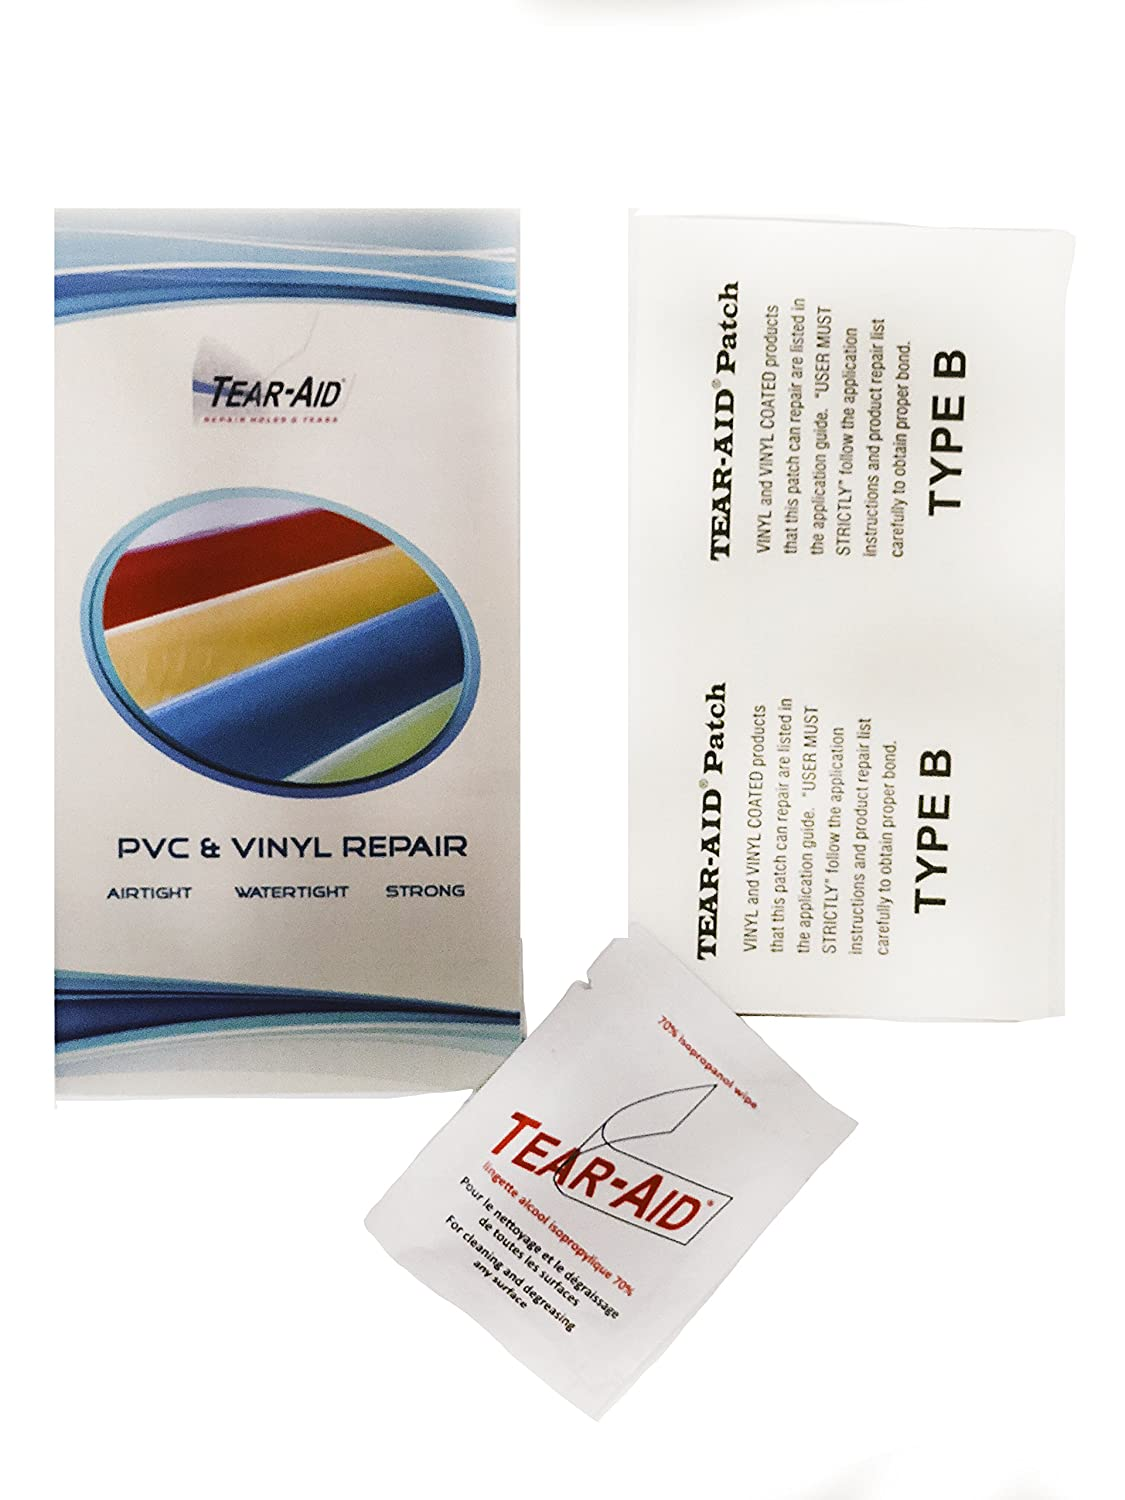 Genuine Repair Patch Type A for General Fabric Repairs Tear-Aid